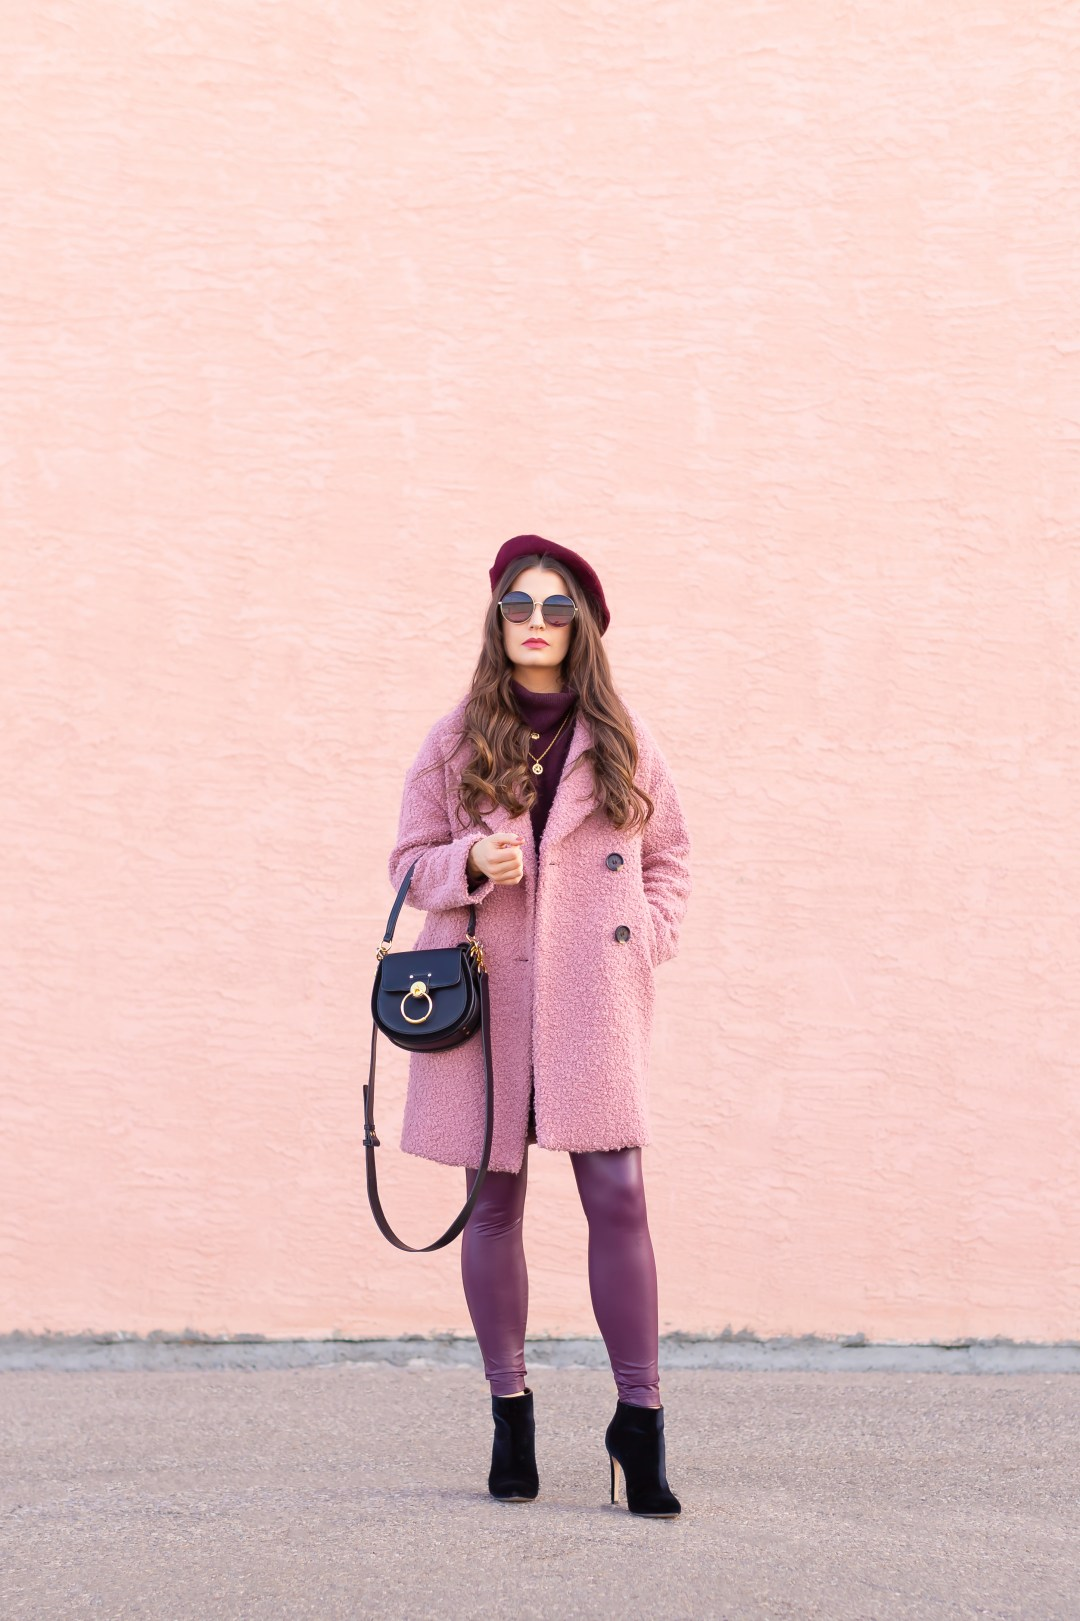 Raspberry Beret: My Favourite Warm, Comfortable Outfit Formula   Topshop Blush Teddy Coat Styled with a Wool Raspberry Beret, H&M burgundy sweater, Burgundy Joe Fresh Leather Leggings, Velvet Ankle Booties and the Artisan Anything Lara Leather Crossbody In Black (Amazing Chloe Tess Dupe!)    Stylish Winter 2019 Outfit Ideas   Valentine's Day Outfit Ideas for Cool Climates // Calgary, Alberta, Canada Fashion & Lifestyle Blogger // JustineCelina.com